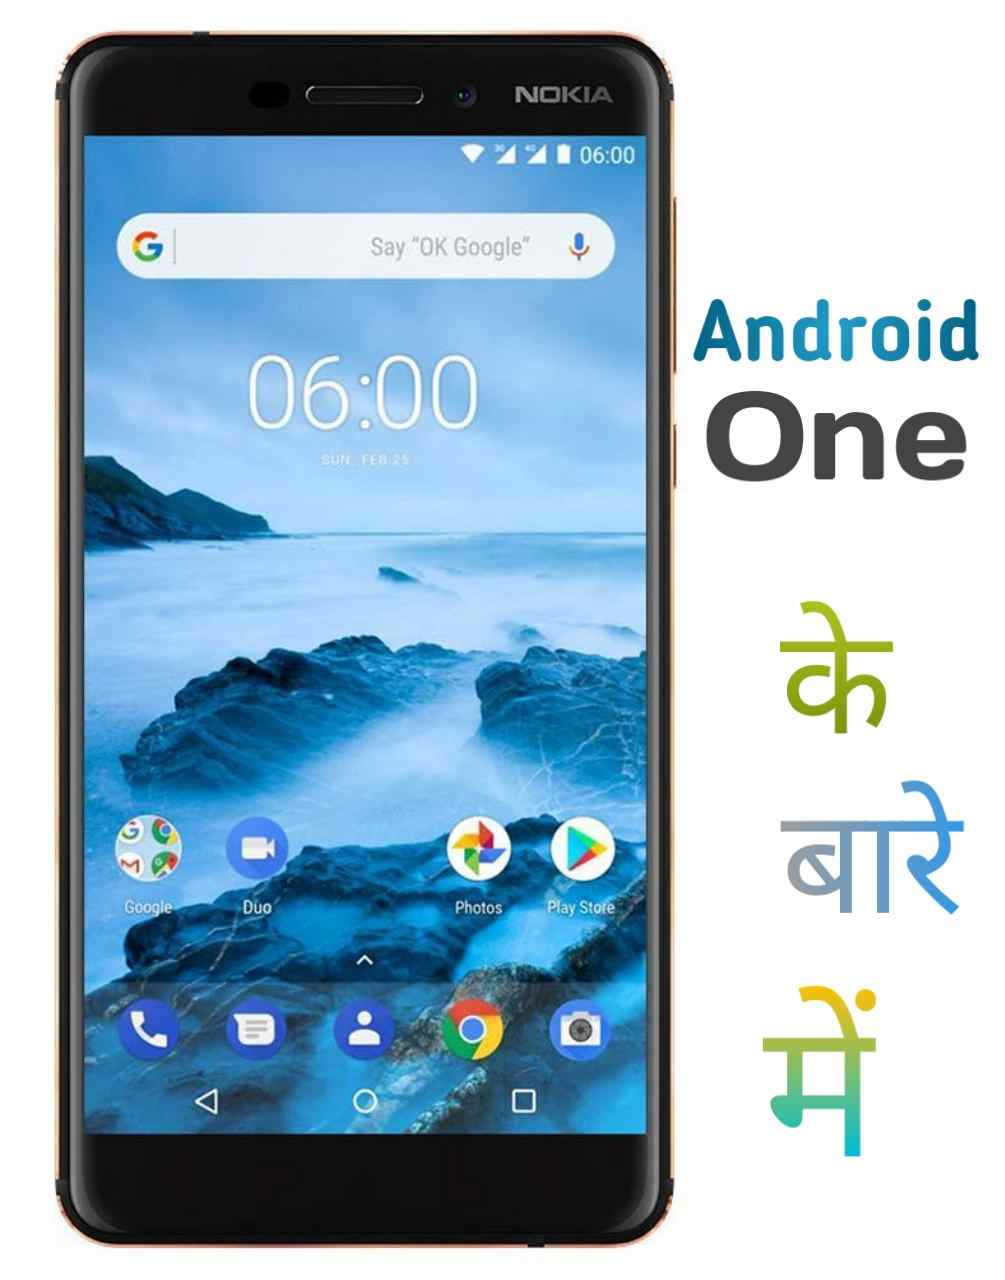 Android One in Hindi, Android One ke baare me